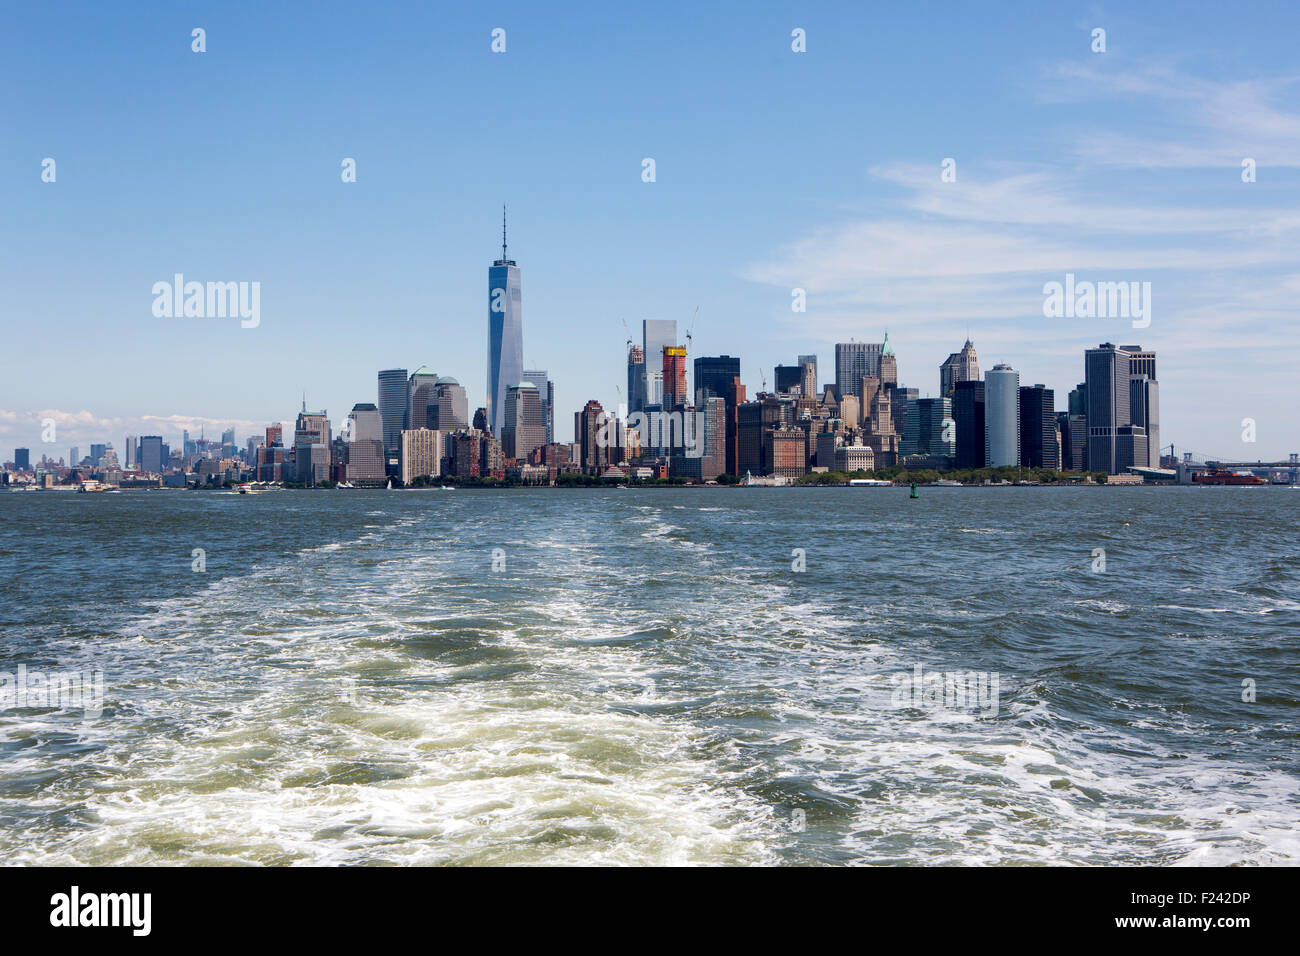 Manhattan sky line shot from the Staten Island ferry - Stock Image